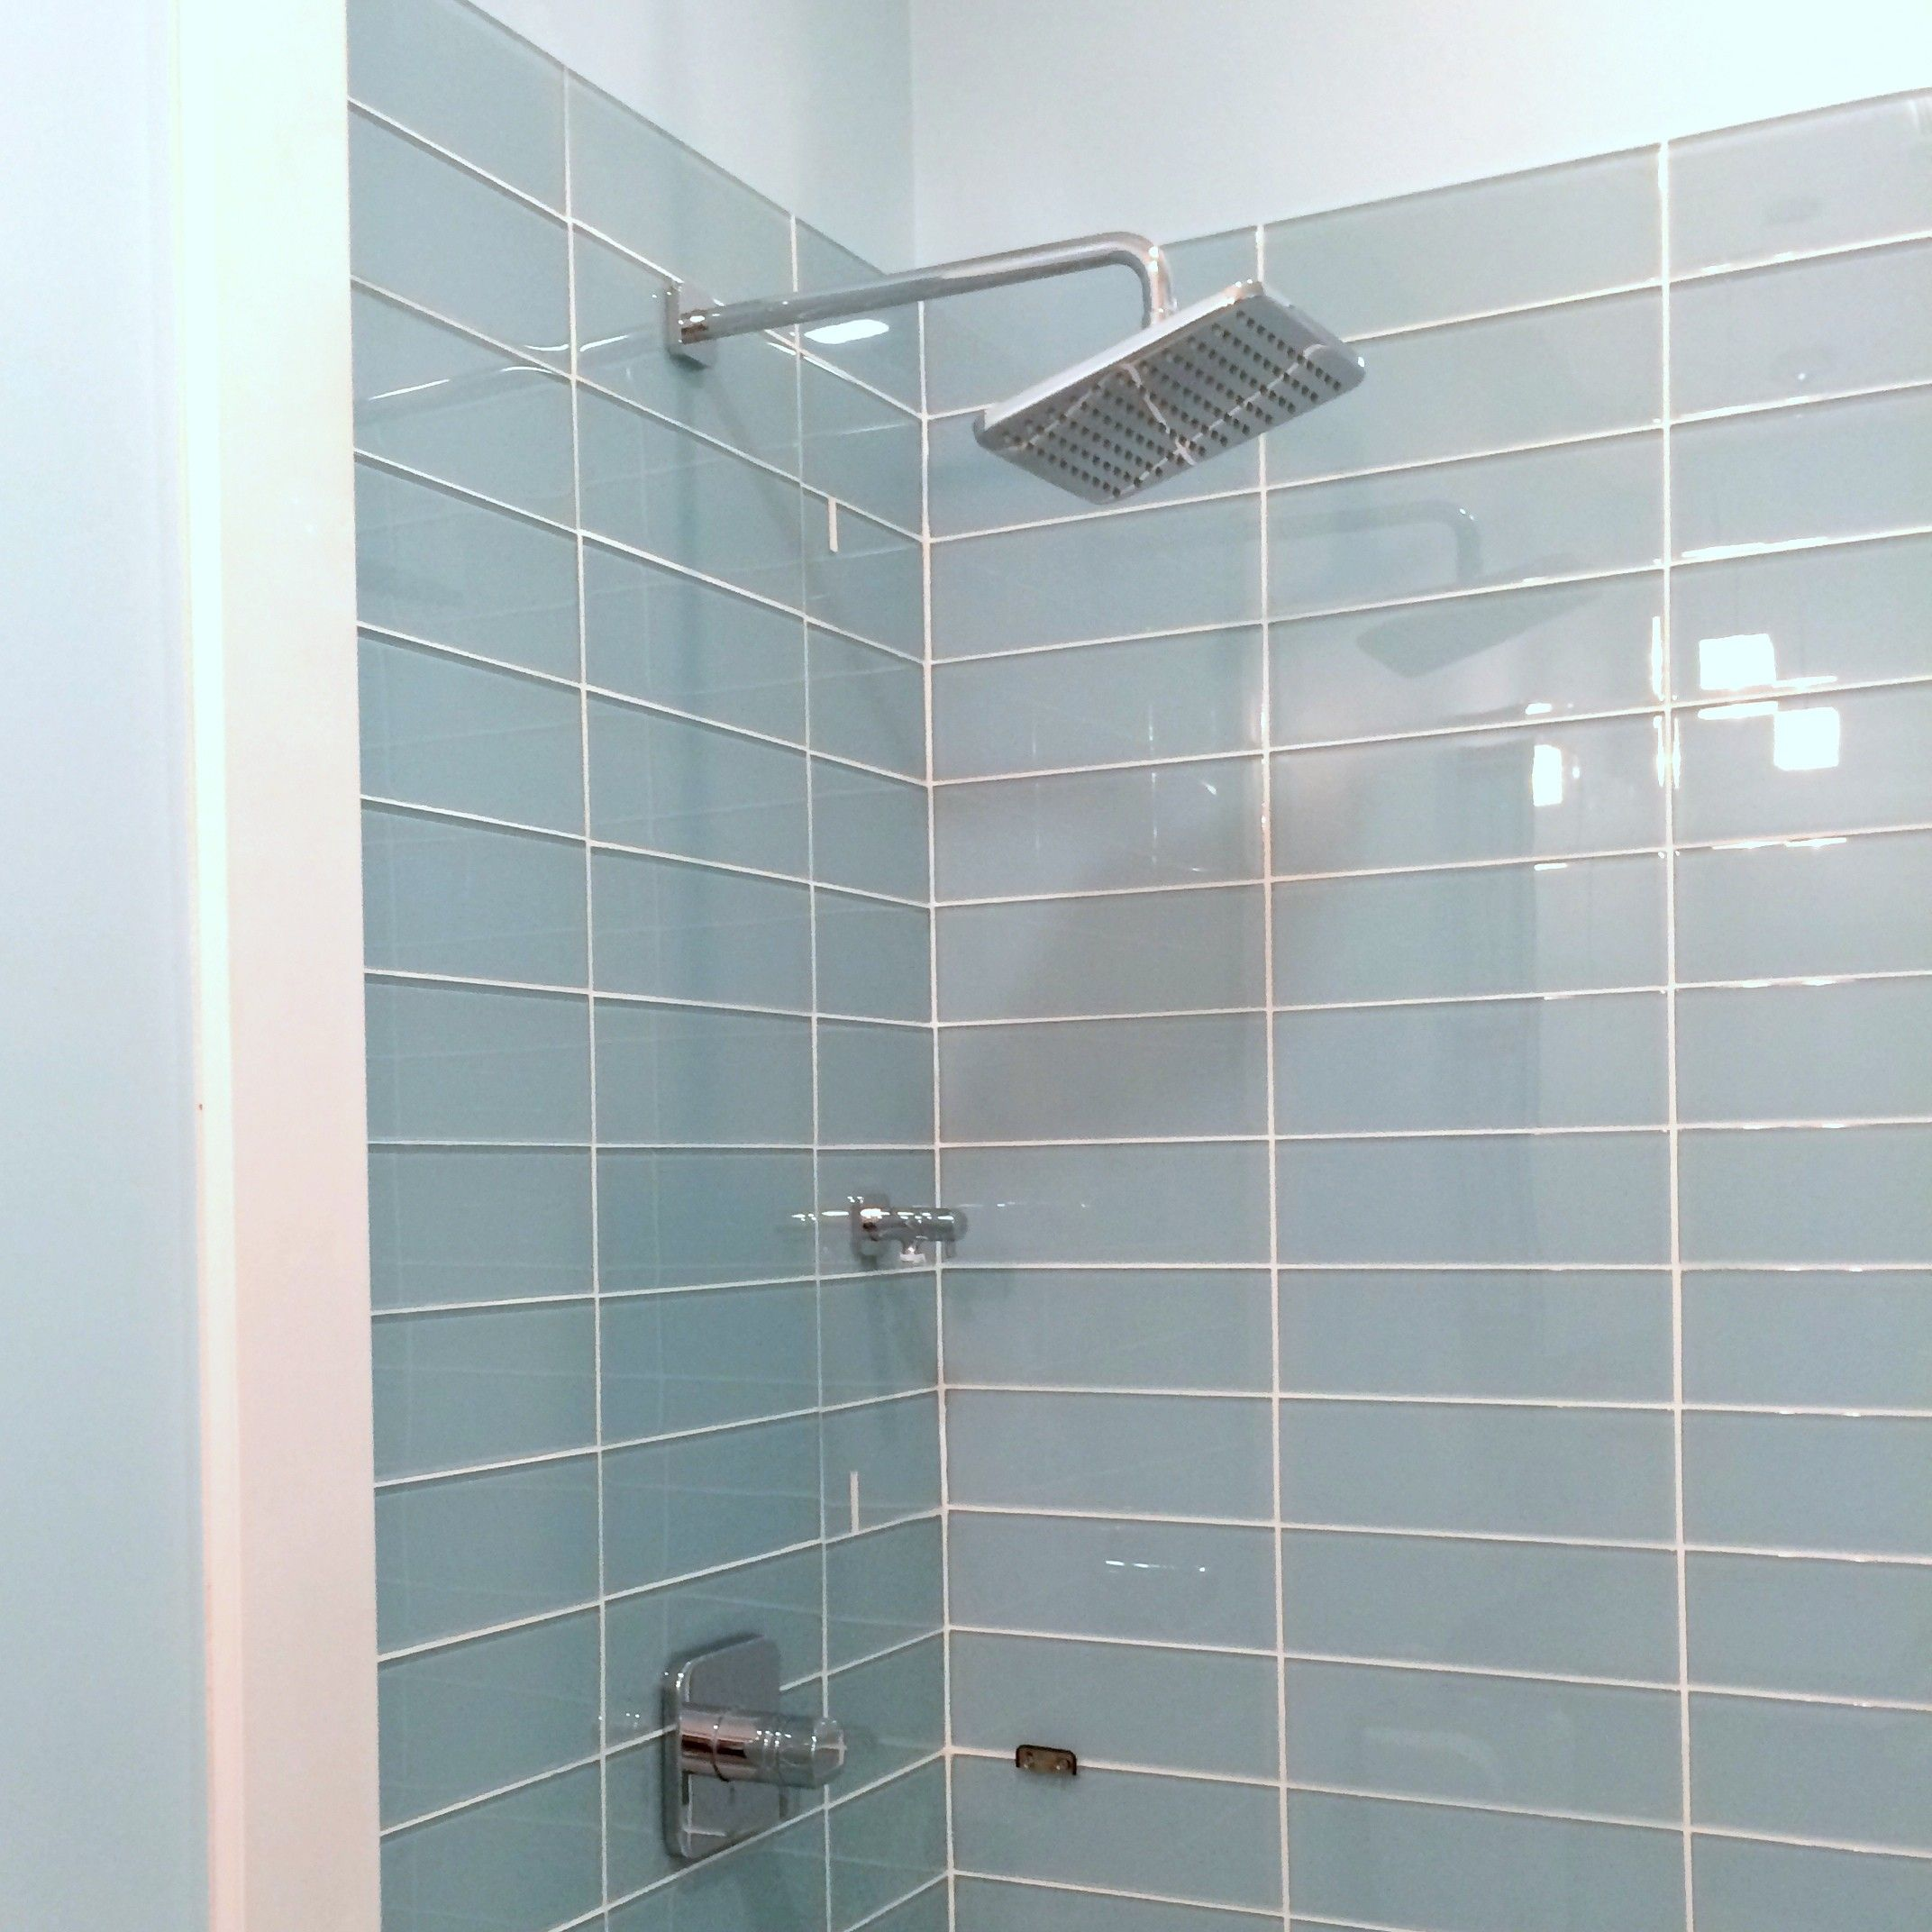 Glass Tiles In Bathroom: Lush Vapor 4x12 Pale Blue Glass Subway Tile Shower